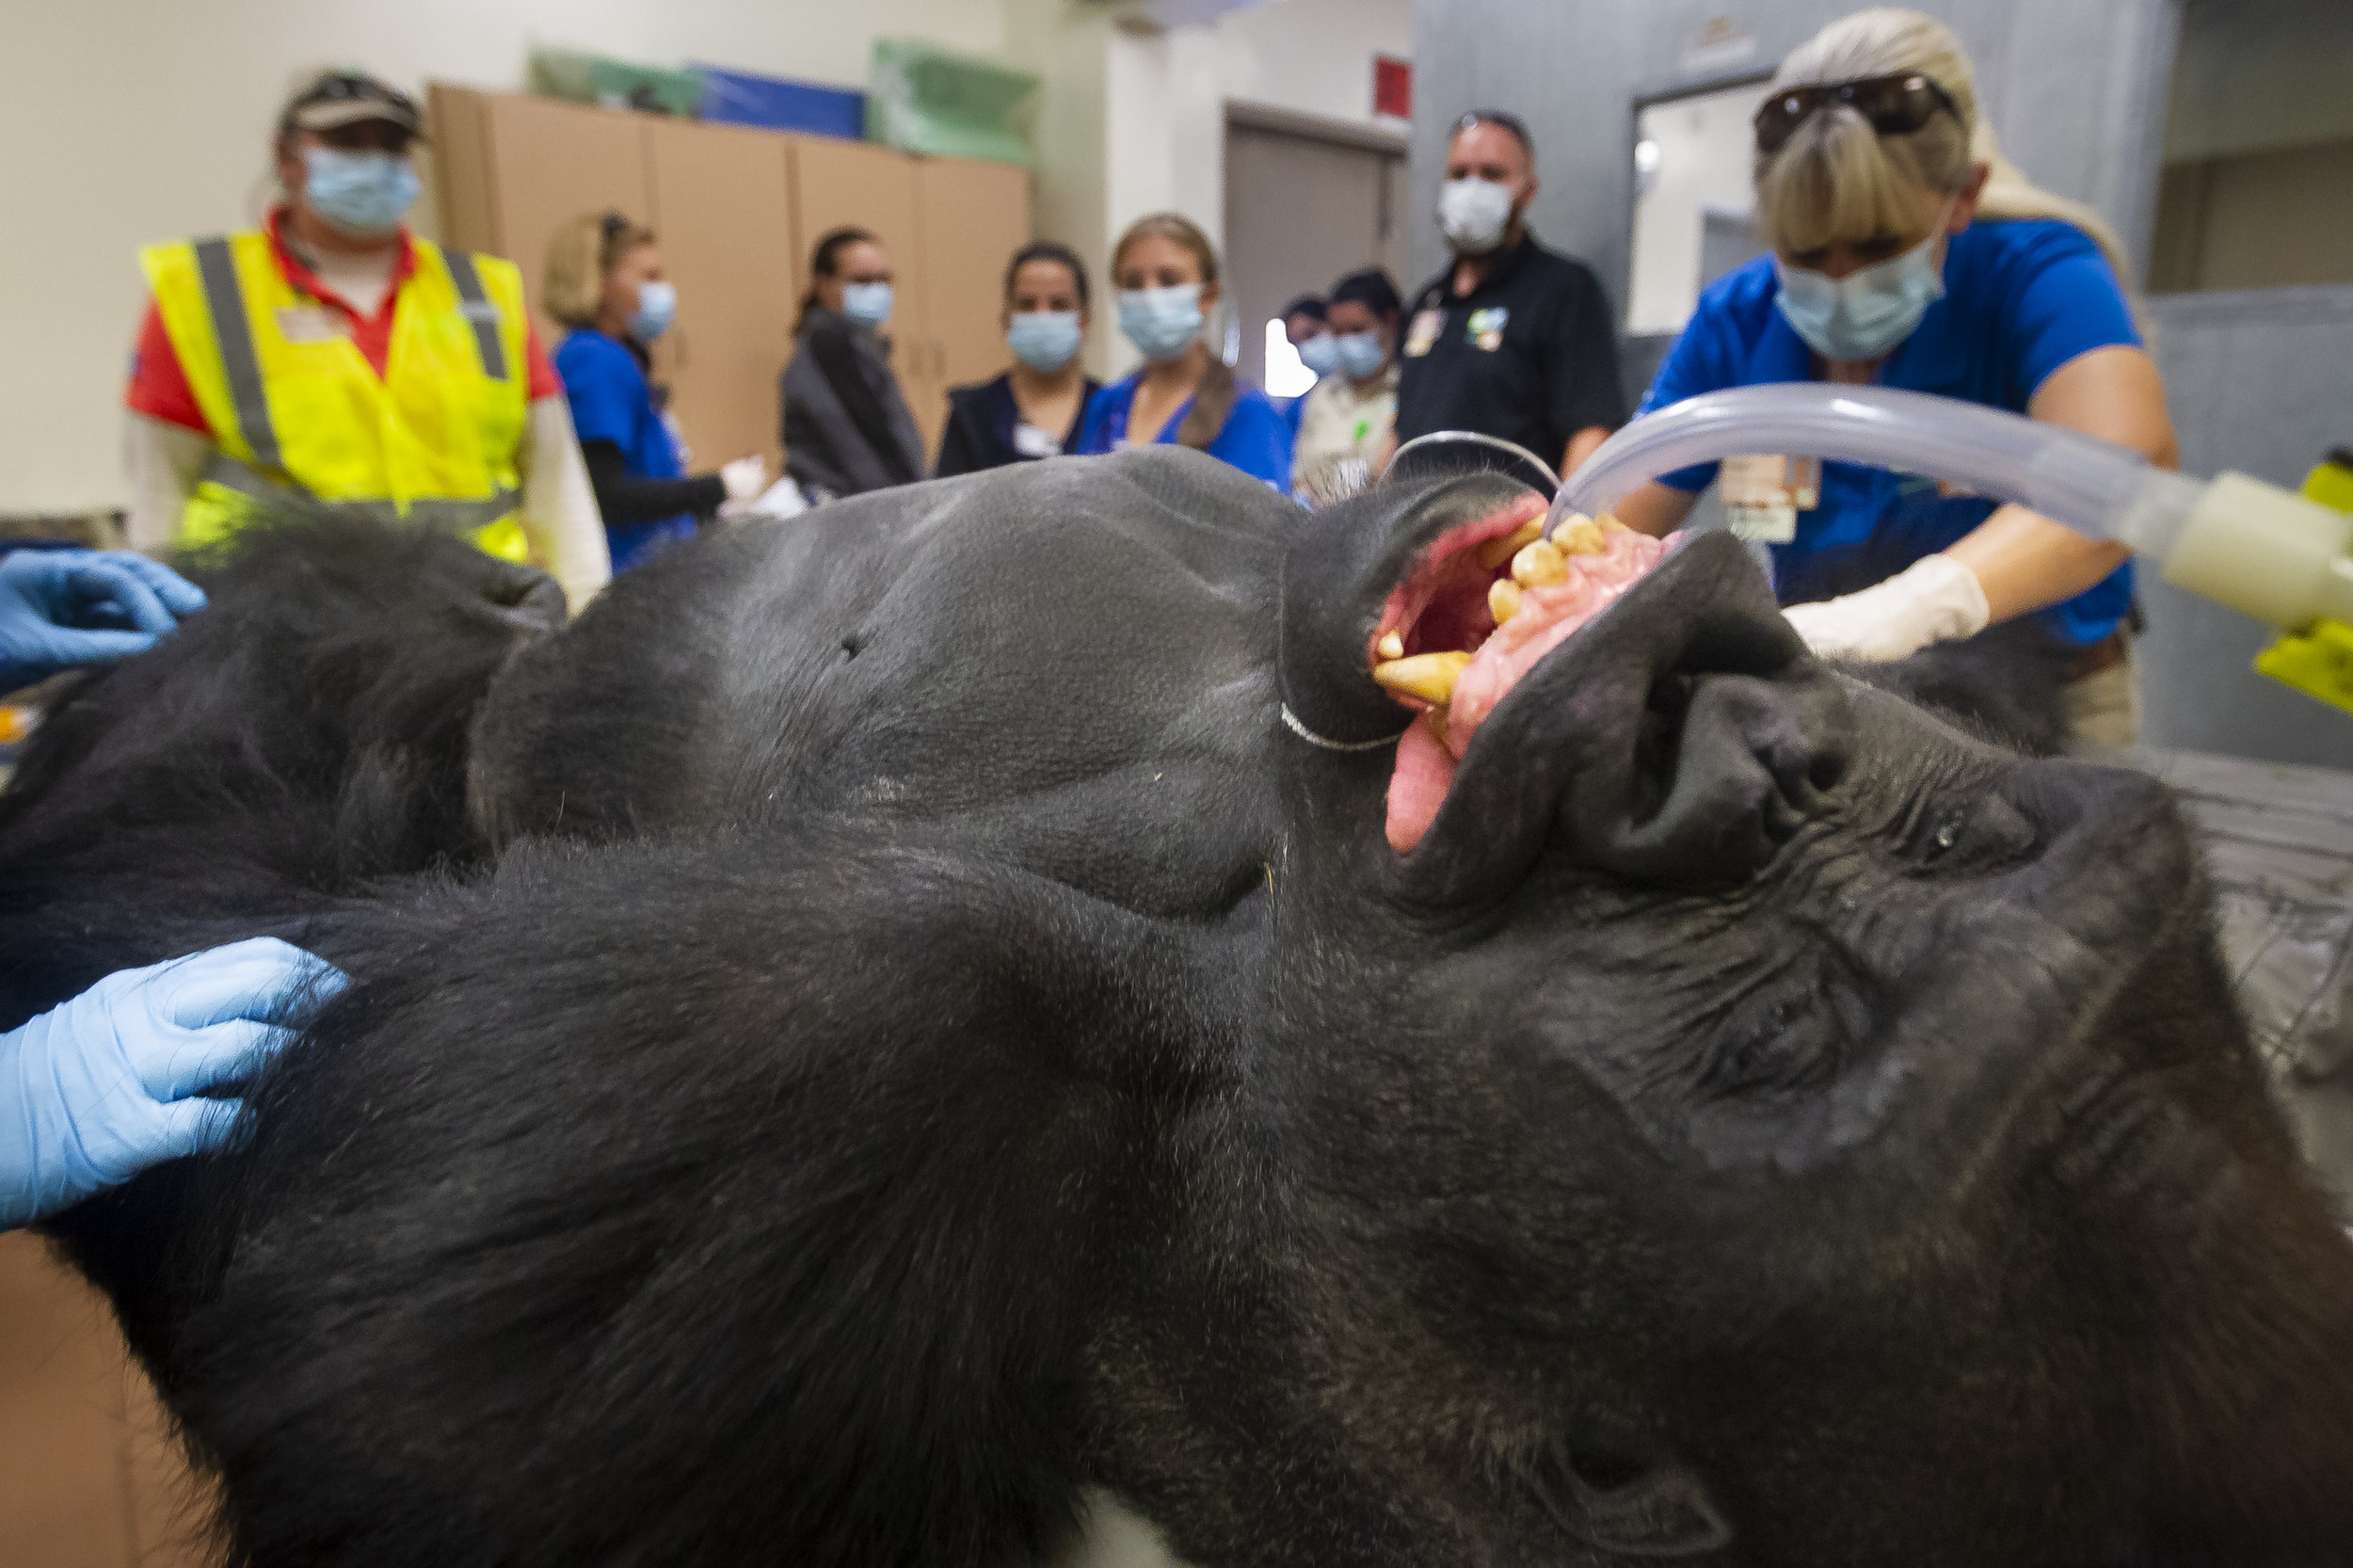 Barney, the 25-year-old silverback gorilla, gets his annual checkup at Zoo Miami on Tuesday, December 11, 2018. Zoo Keepers were concerned by Barney's persistent cough and after his examination they learned he has mites in his airways.